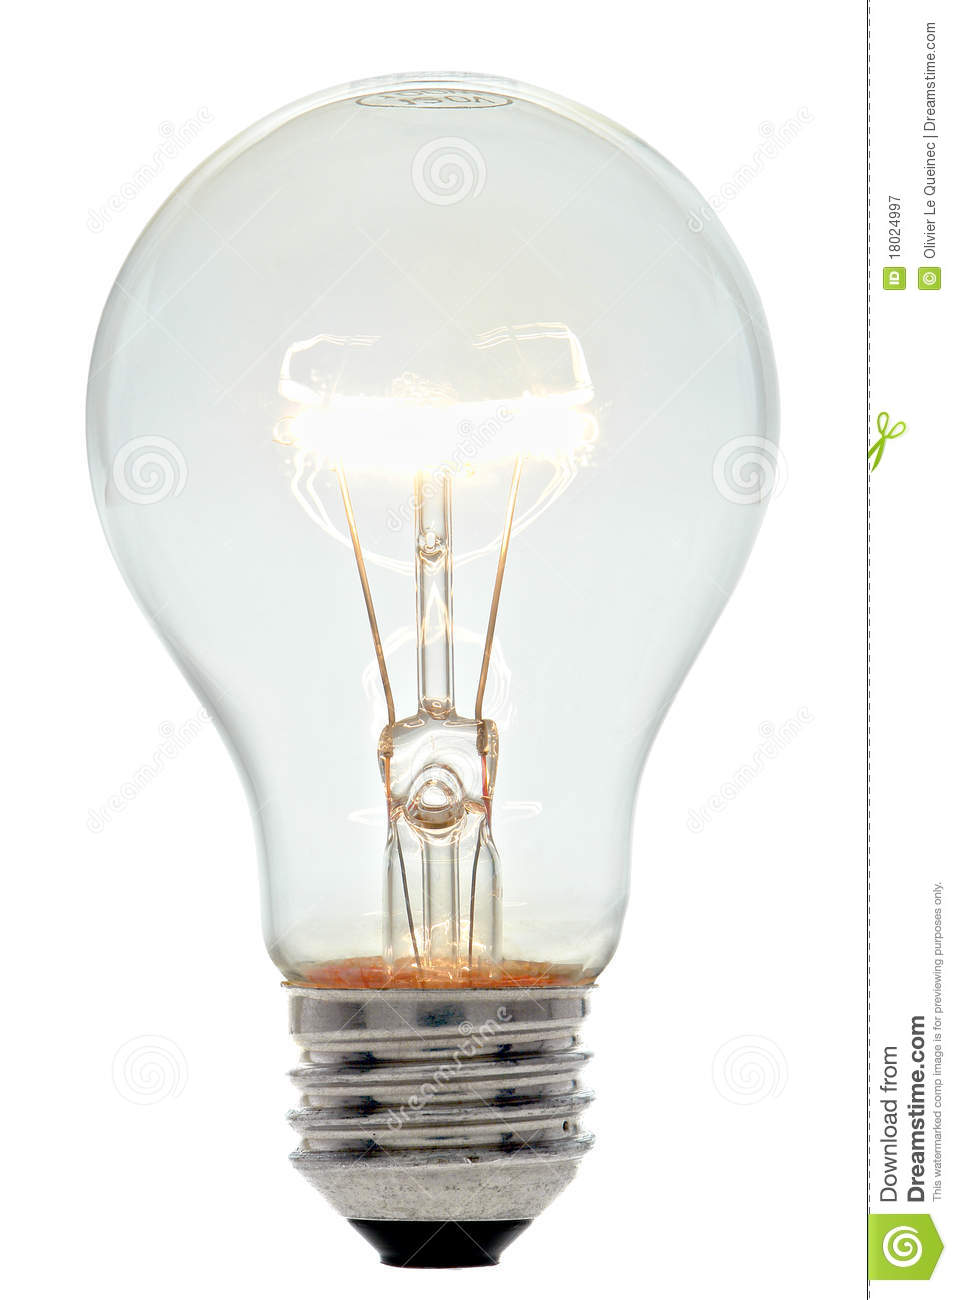 Electric Light Bulb Incandescent Filament Glowing Royalty Free Stock Photography Image 18024997